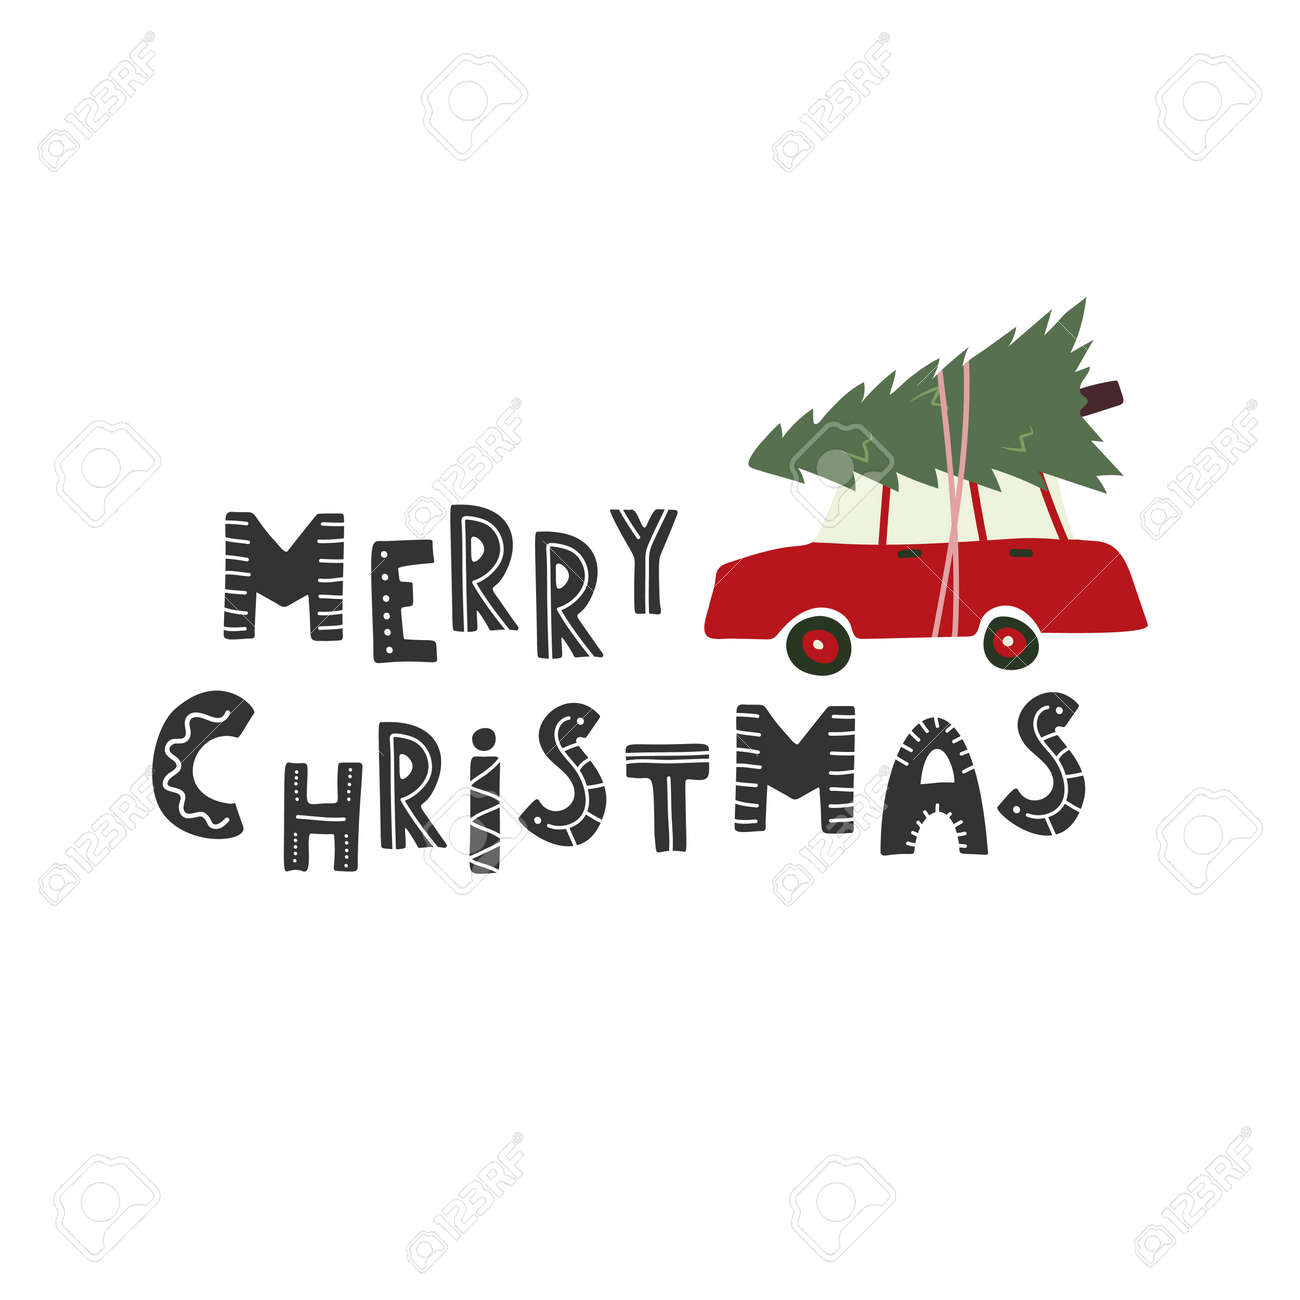 Merry Christmas Car With A Christmas Tree On The Roof Royalty Free